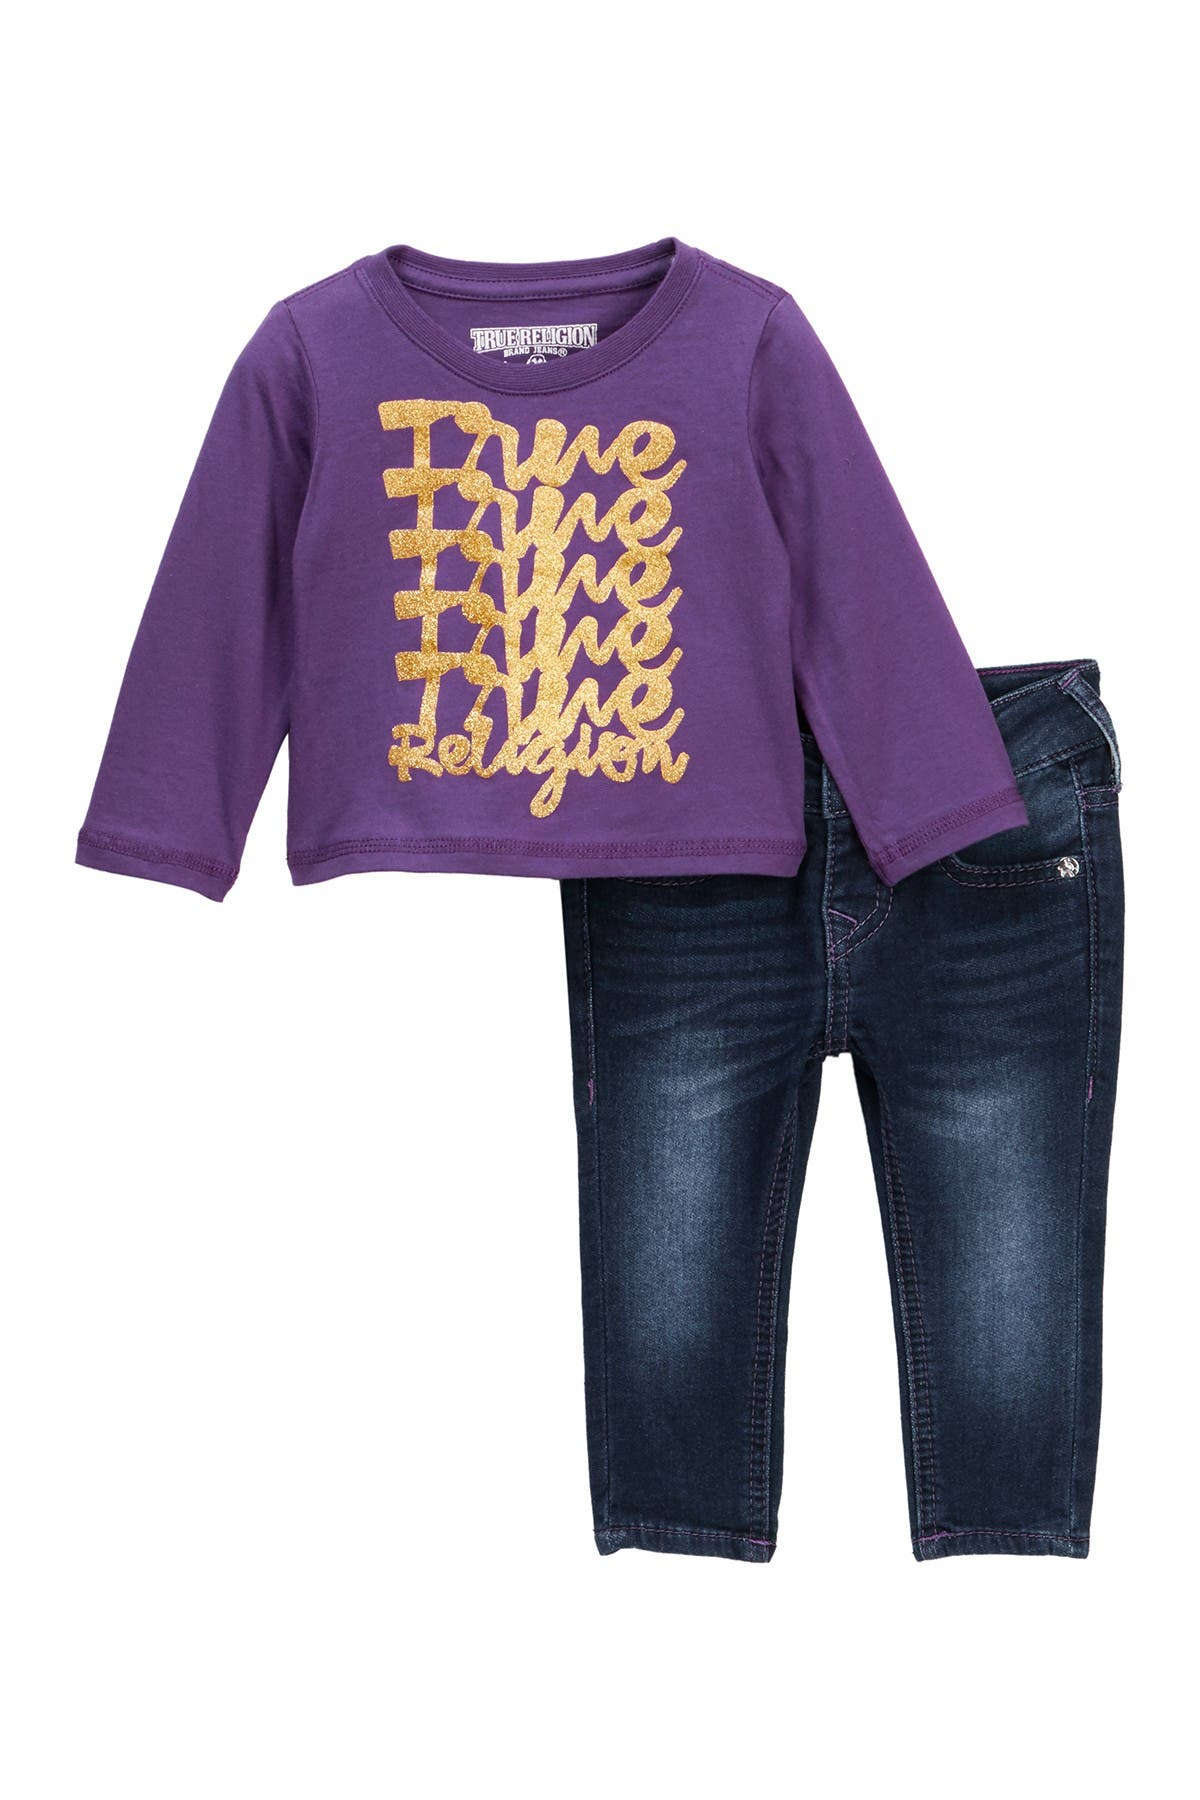 Image of True Religion Long Sleeve T-Shirt & Jeans Set